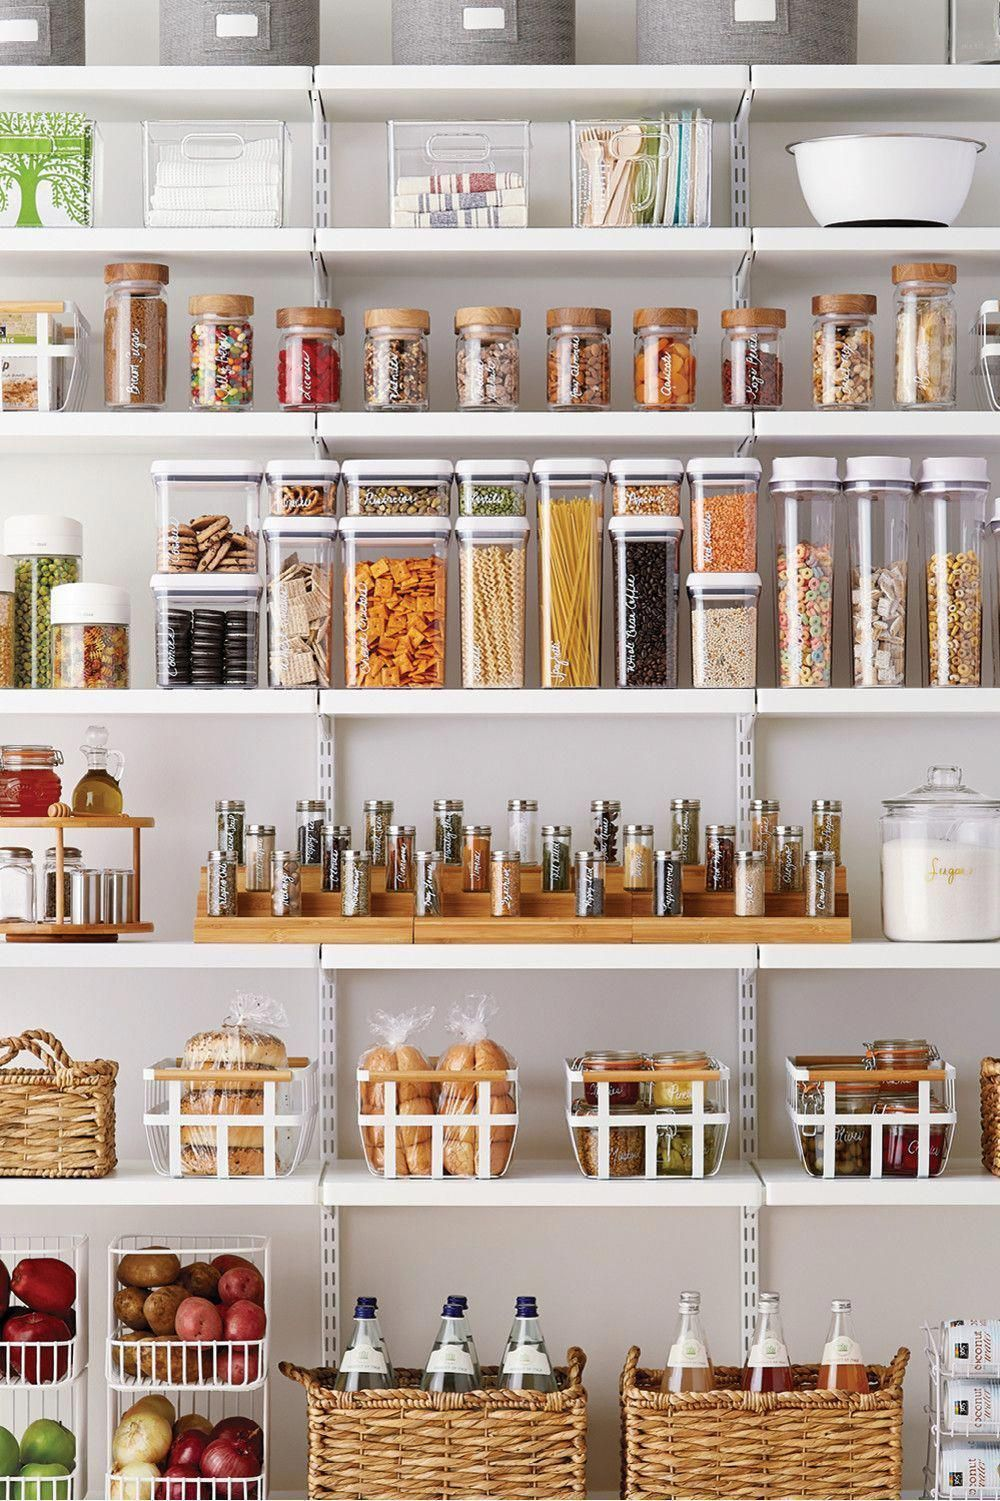 Kitchen Organization and Pantry Design Dreams - Hither & Thither